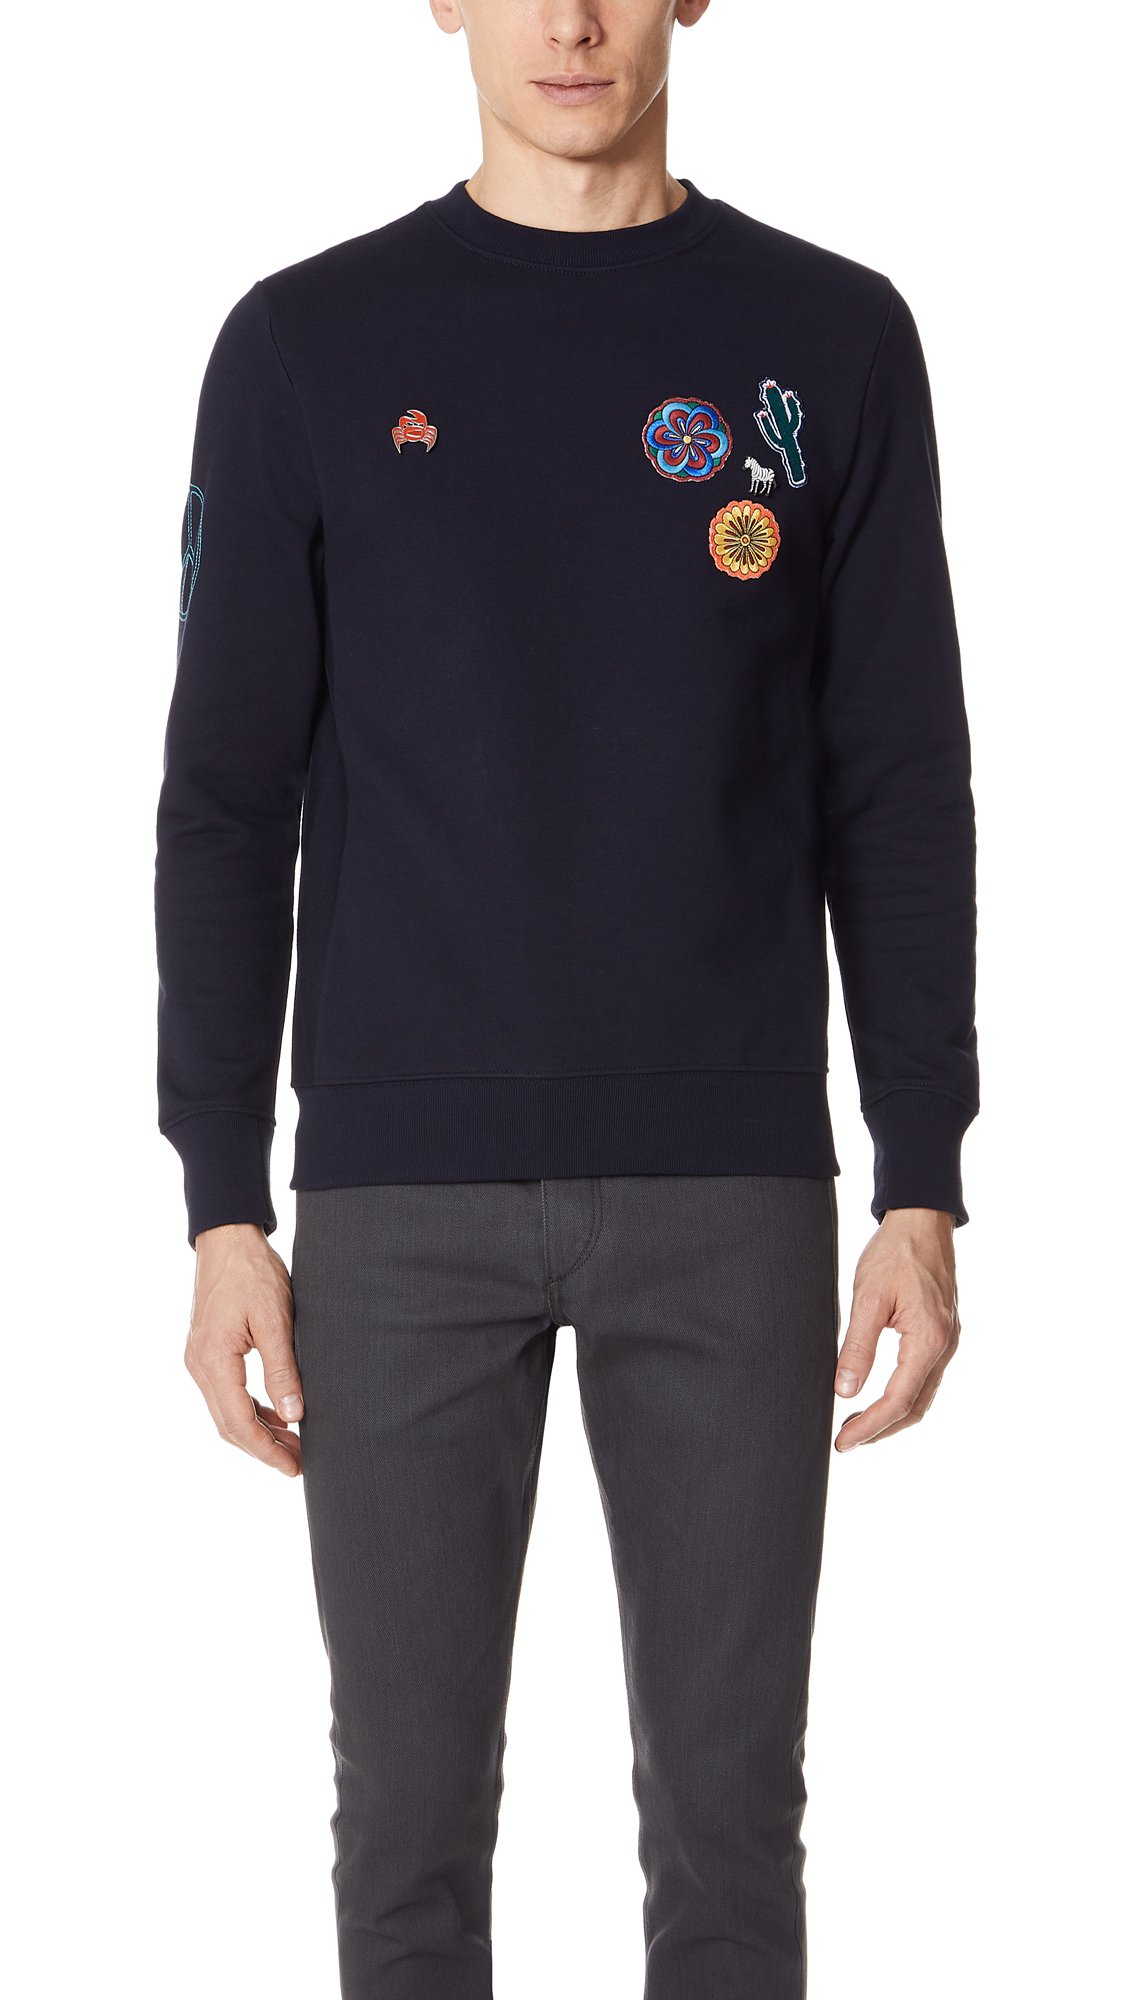 PS by Paul Smith Men's Embroidered Crew Neck Sweatshirt, Navy, Small